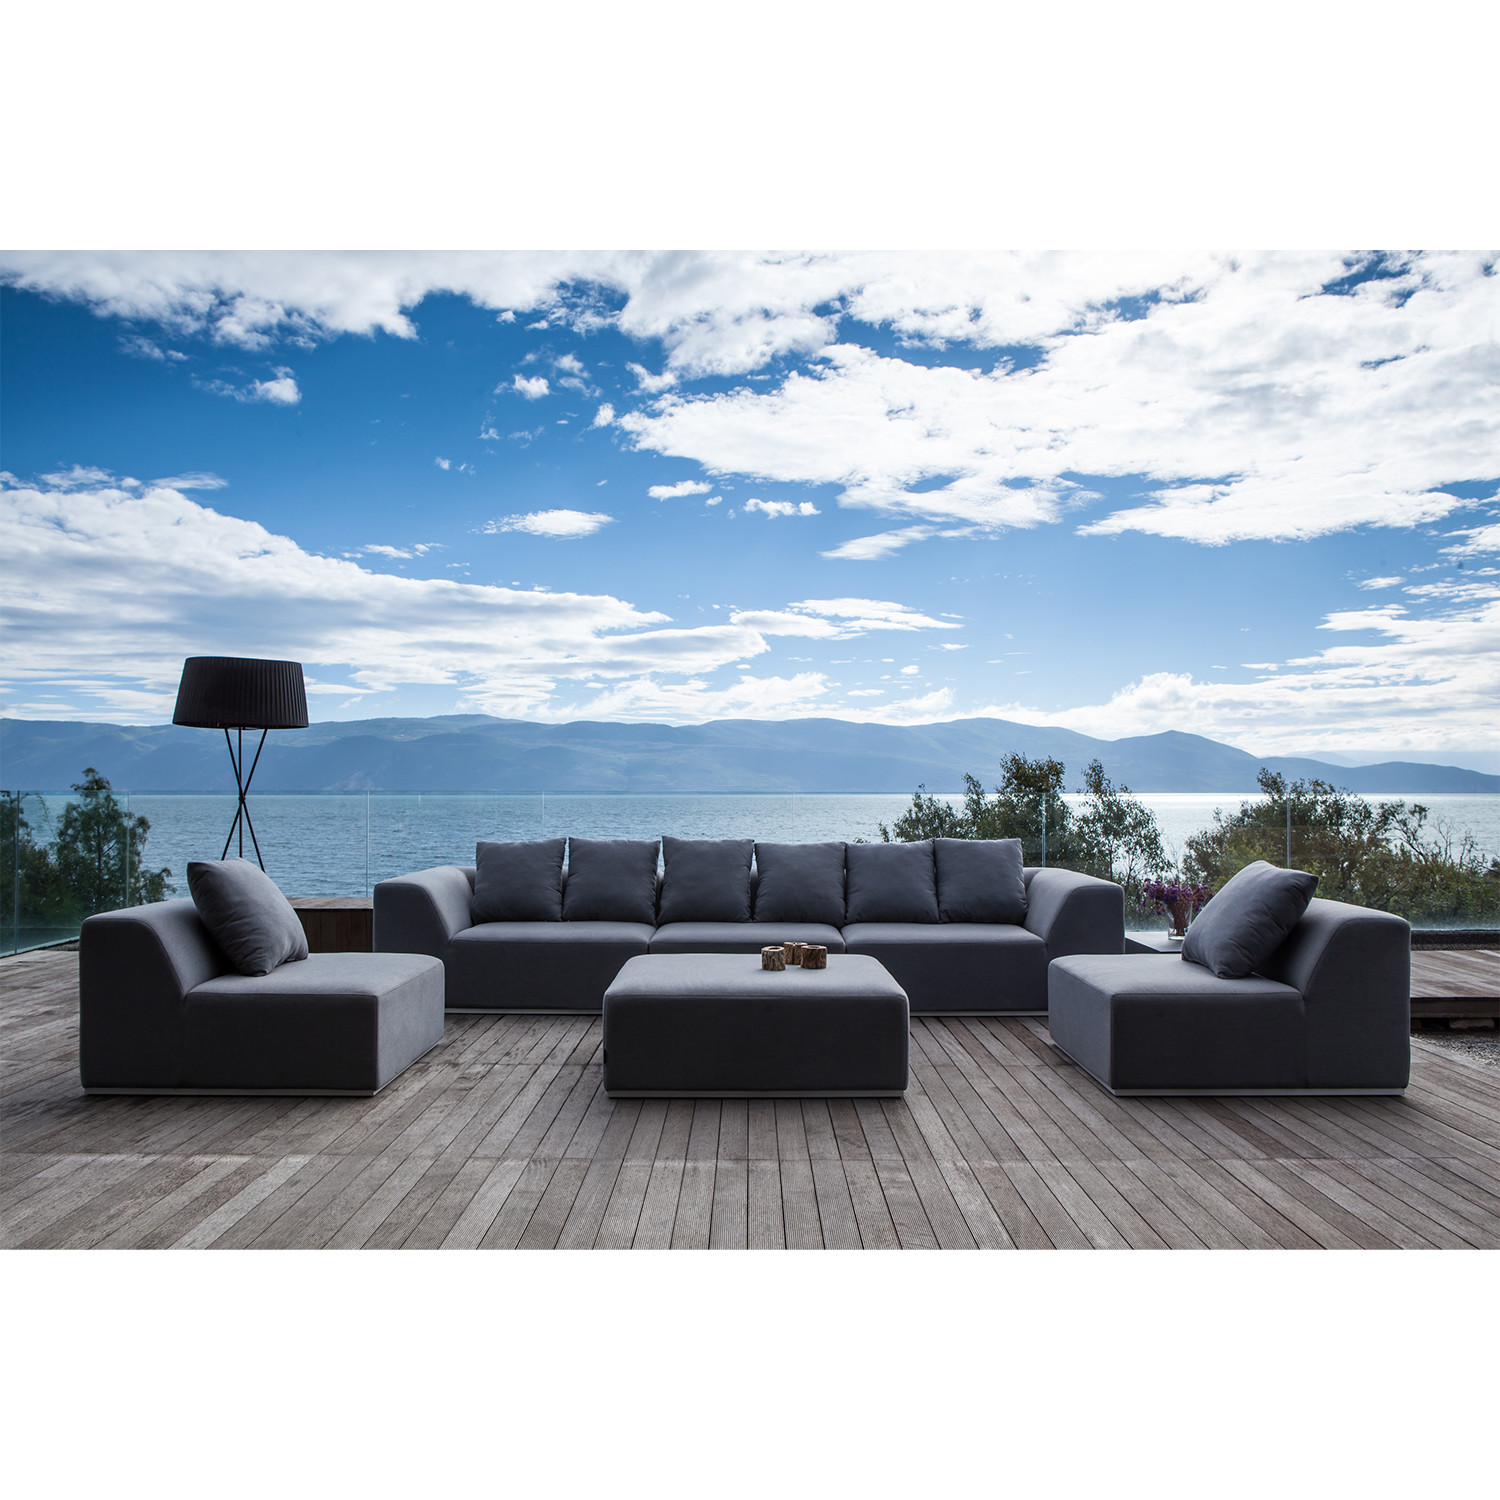 Buddha Sofa Set // 4 Piece - Maze Lounge - Touch of Modern